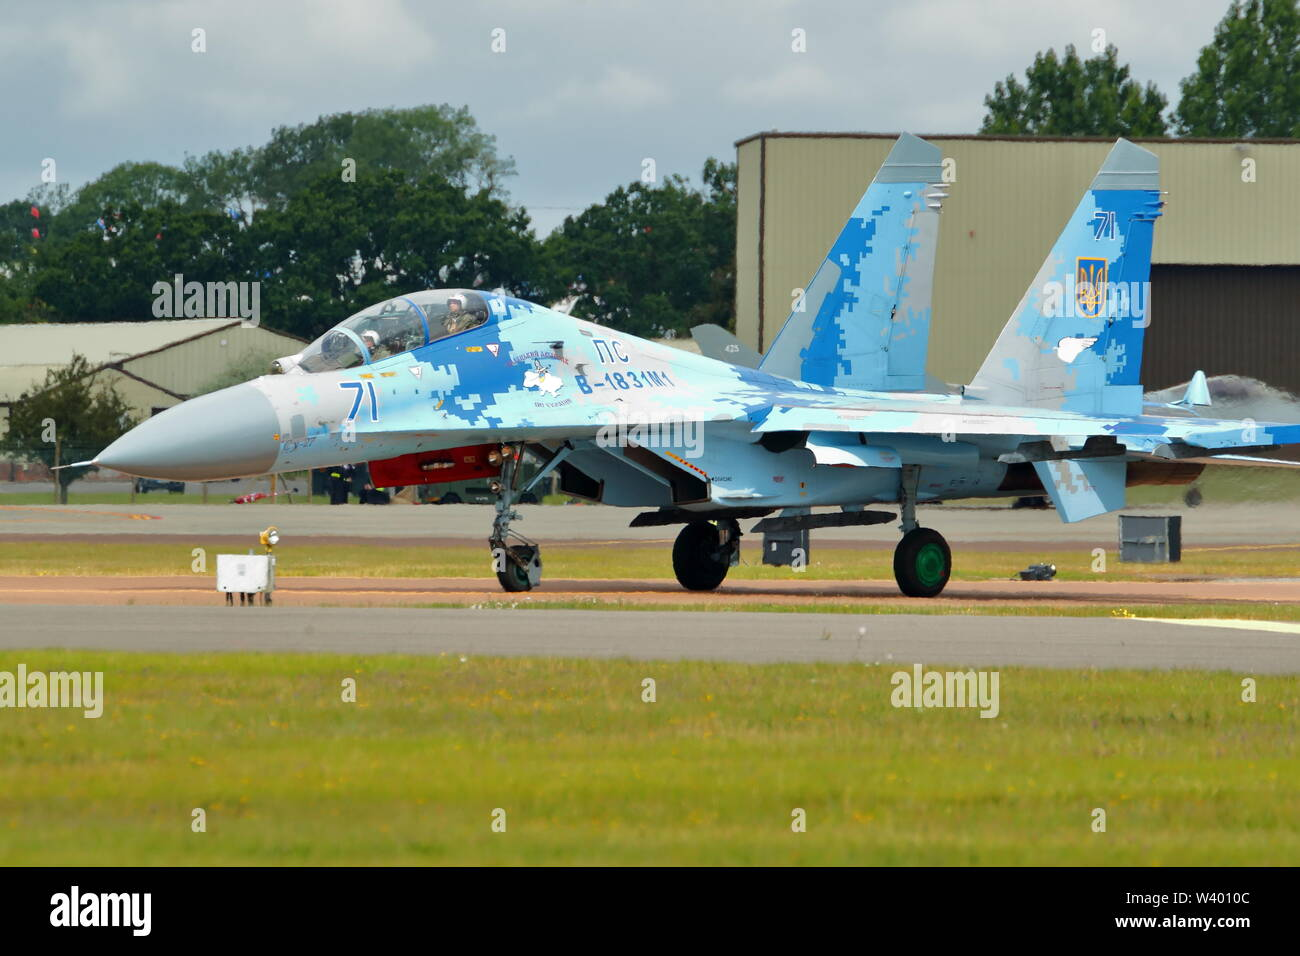 Ukrainian Air Force Sukhoi SU-27 Flanker arriving at RIAT 2019 at RAF Fairford, Gloucestershire, UK - Stock Image